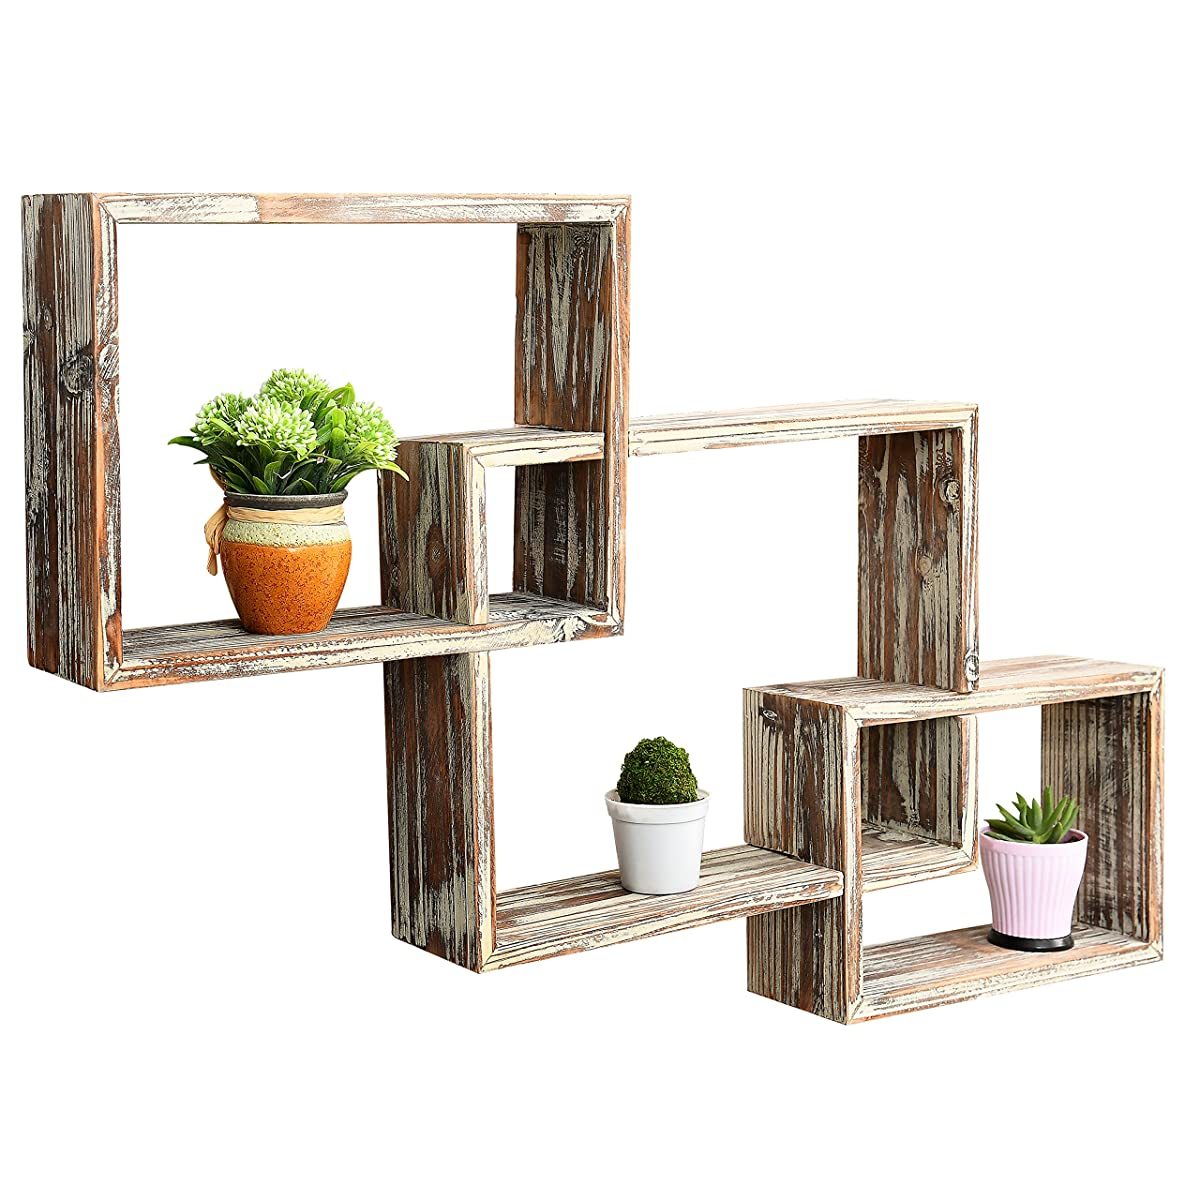 Country Rustic 3 Tier Floating Box Shelves, Decorative Wood Wall Mounted Display Shelf, Brown